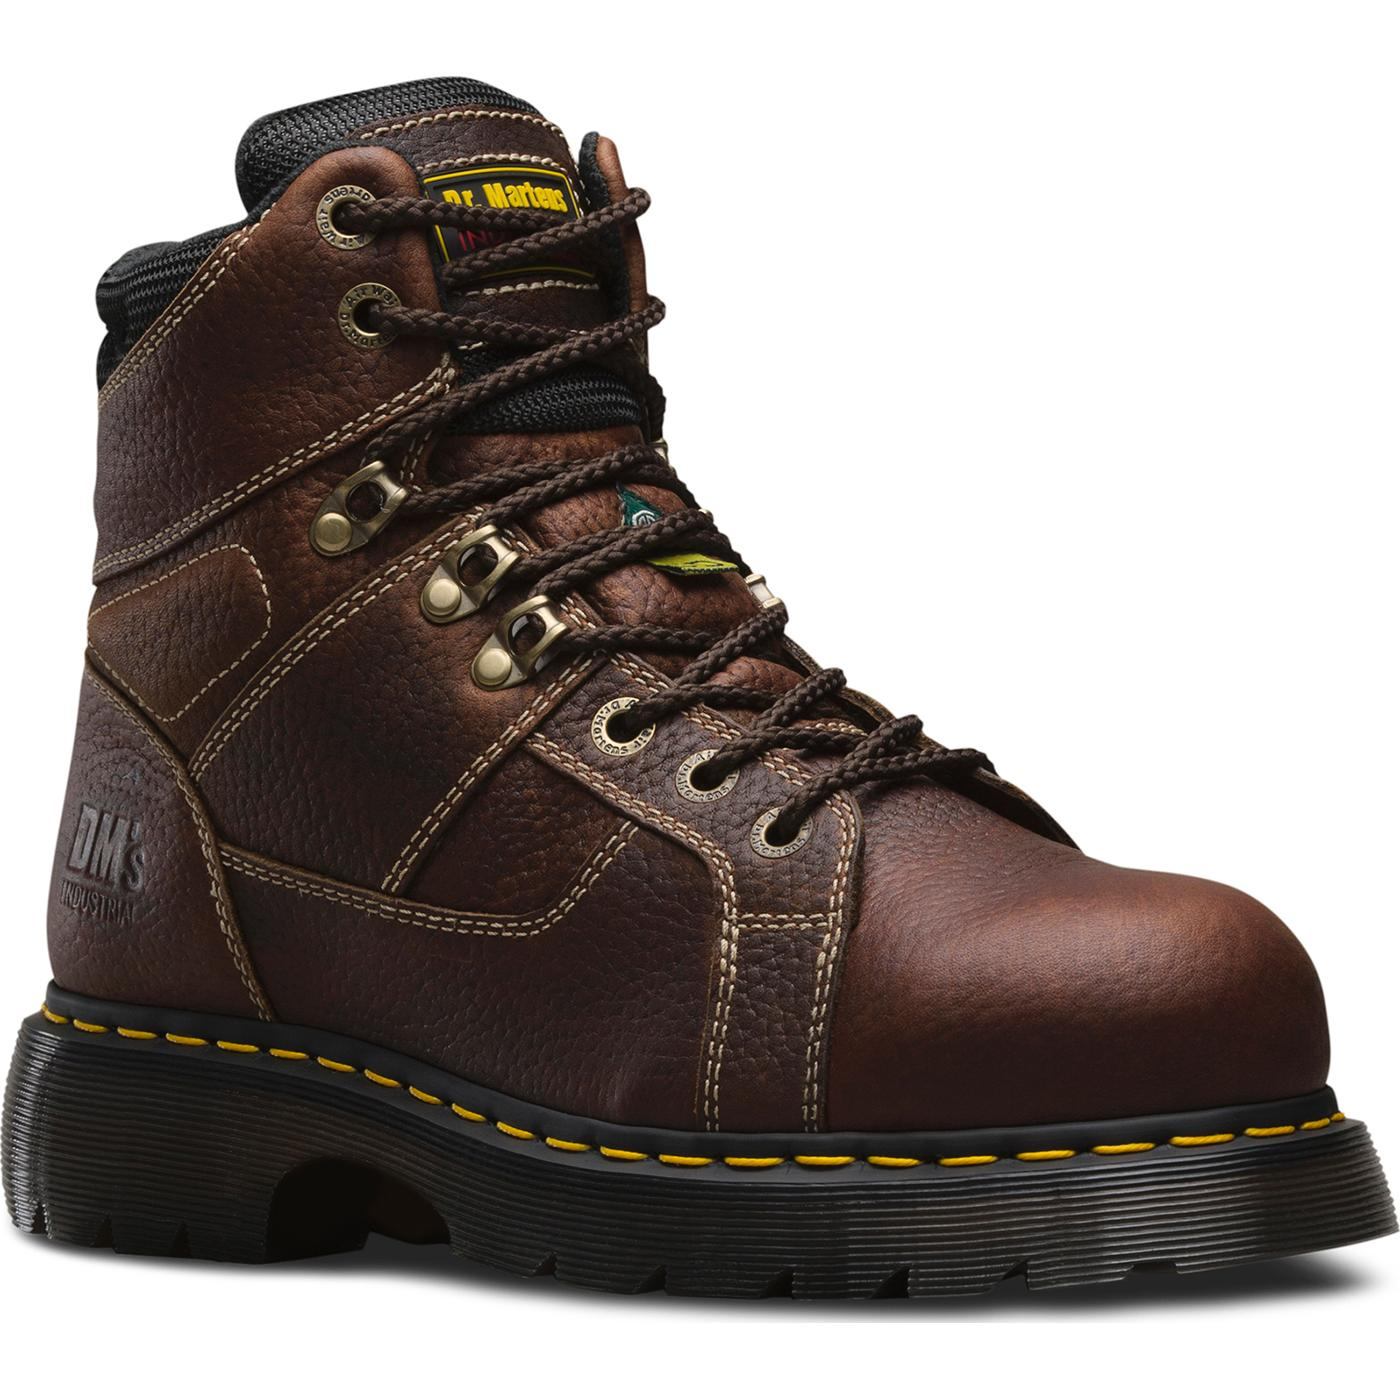 Rocky® footwear and apparel are for people who are active, engaged and on the go. Categories include work, duty, western, military and outdoor.